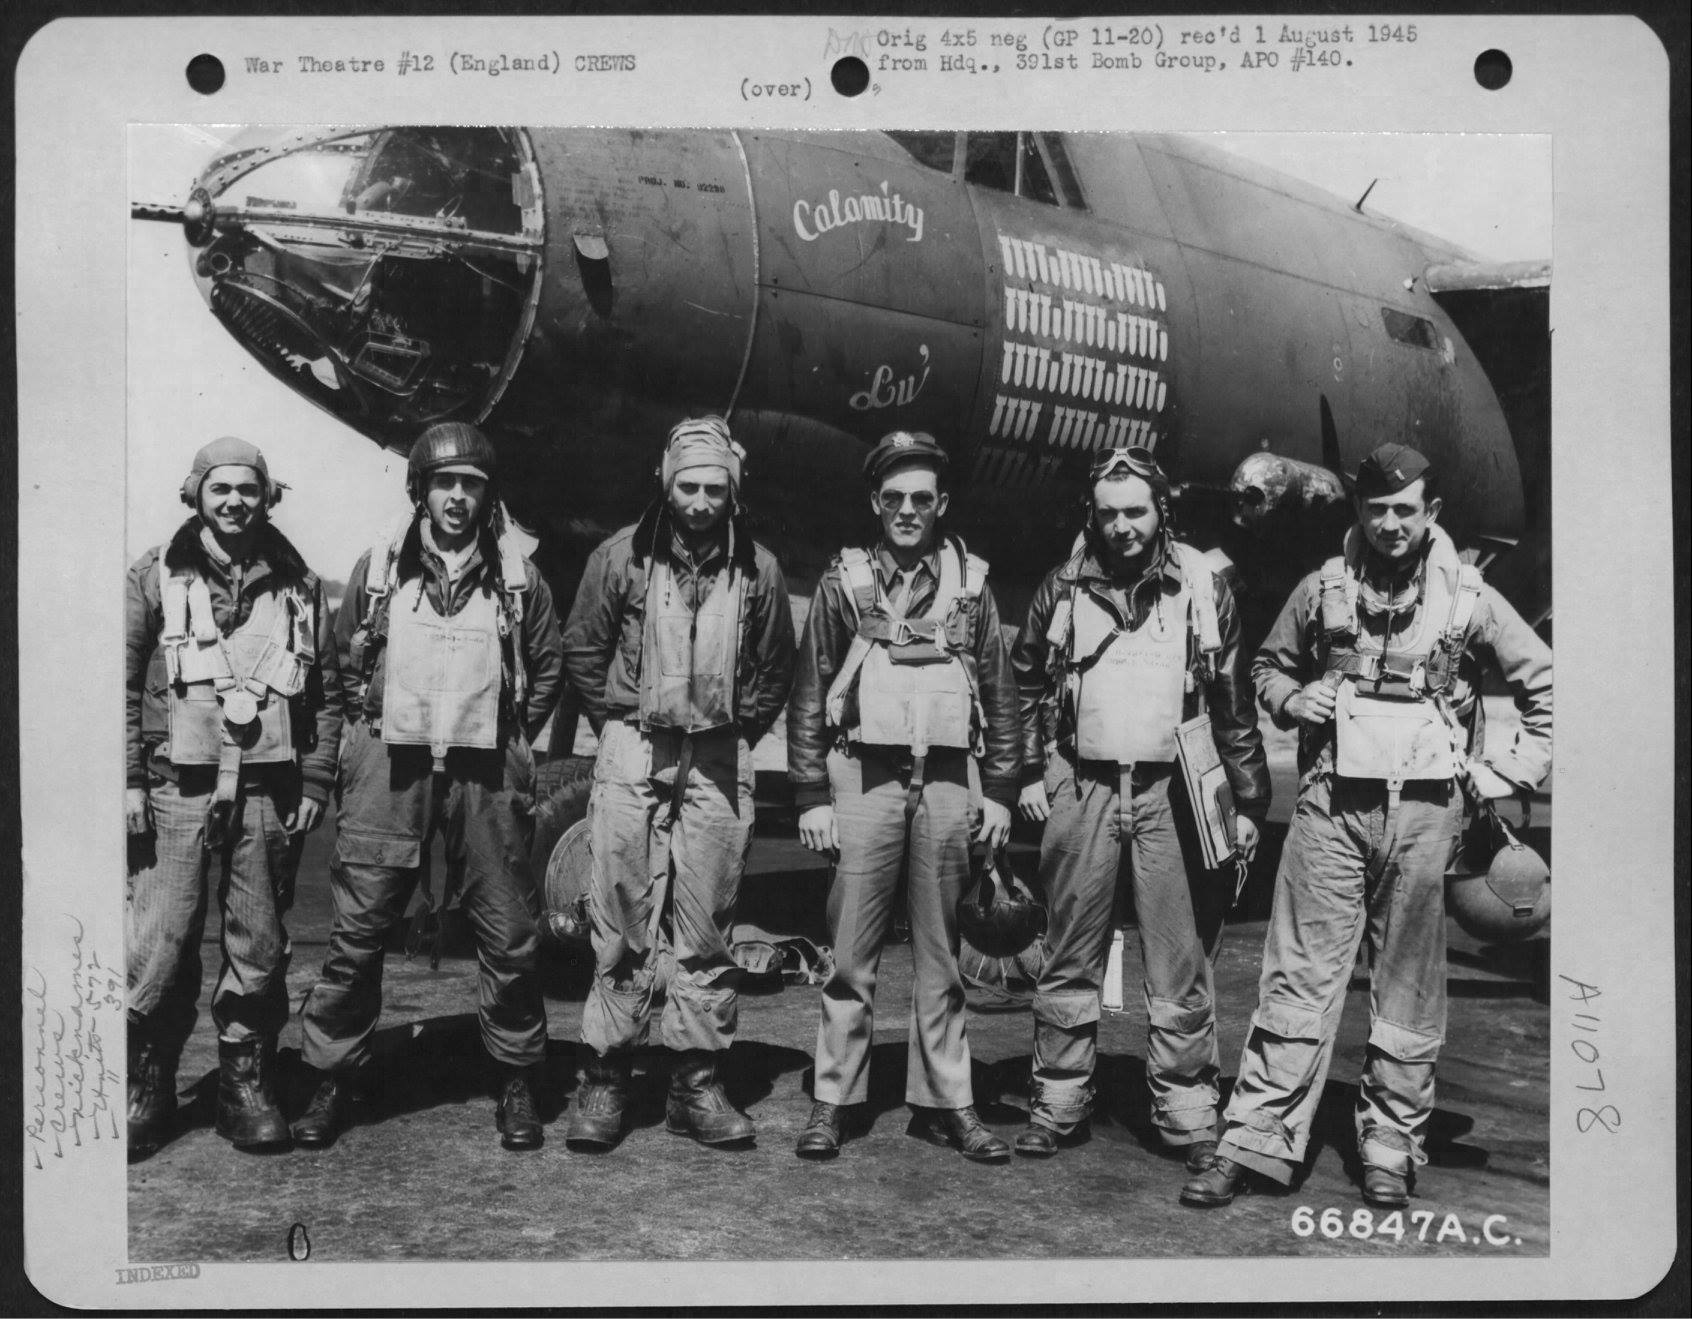 USAAF 42 95830 B 26B Marauder 391BG573BS T6M Calamity Lu with Lt Walker and crew England 9 Aug 1944 01